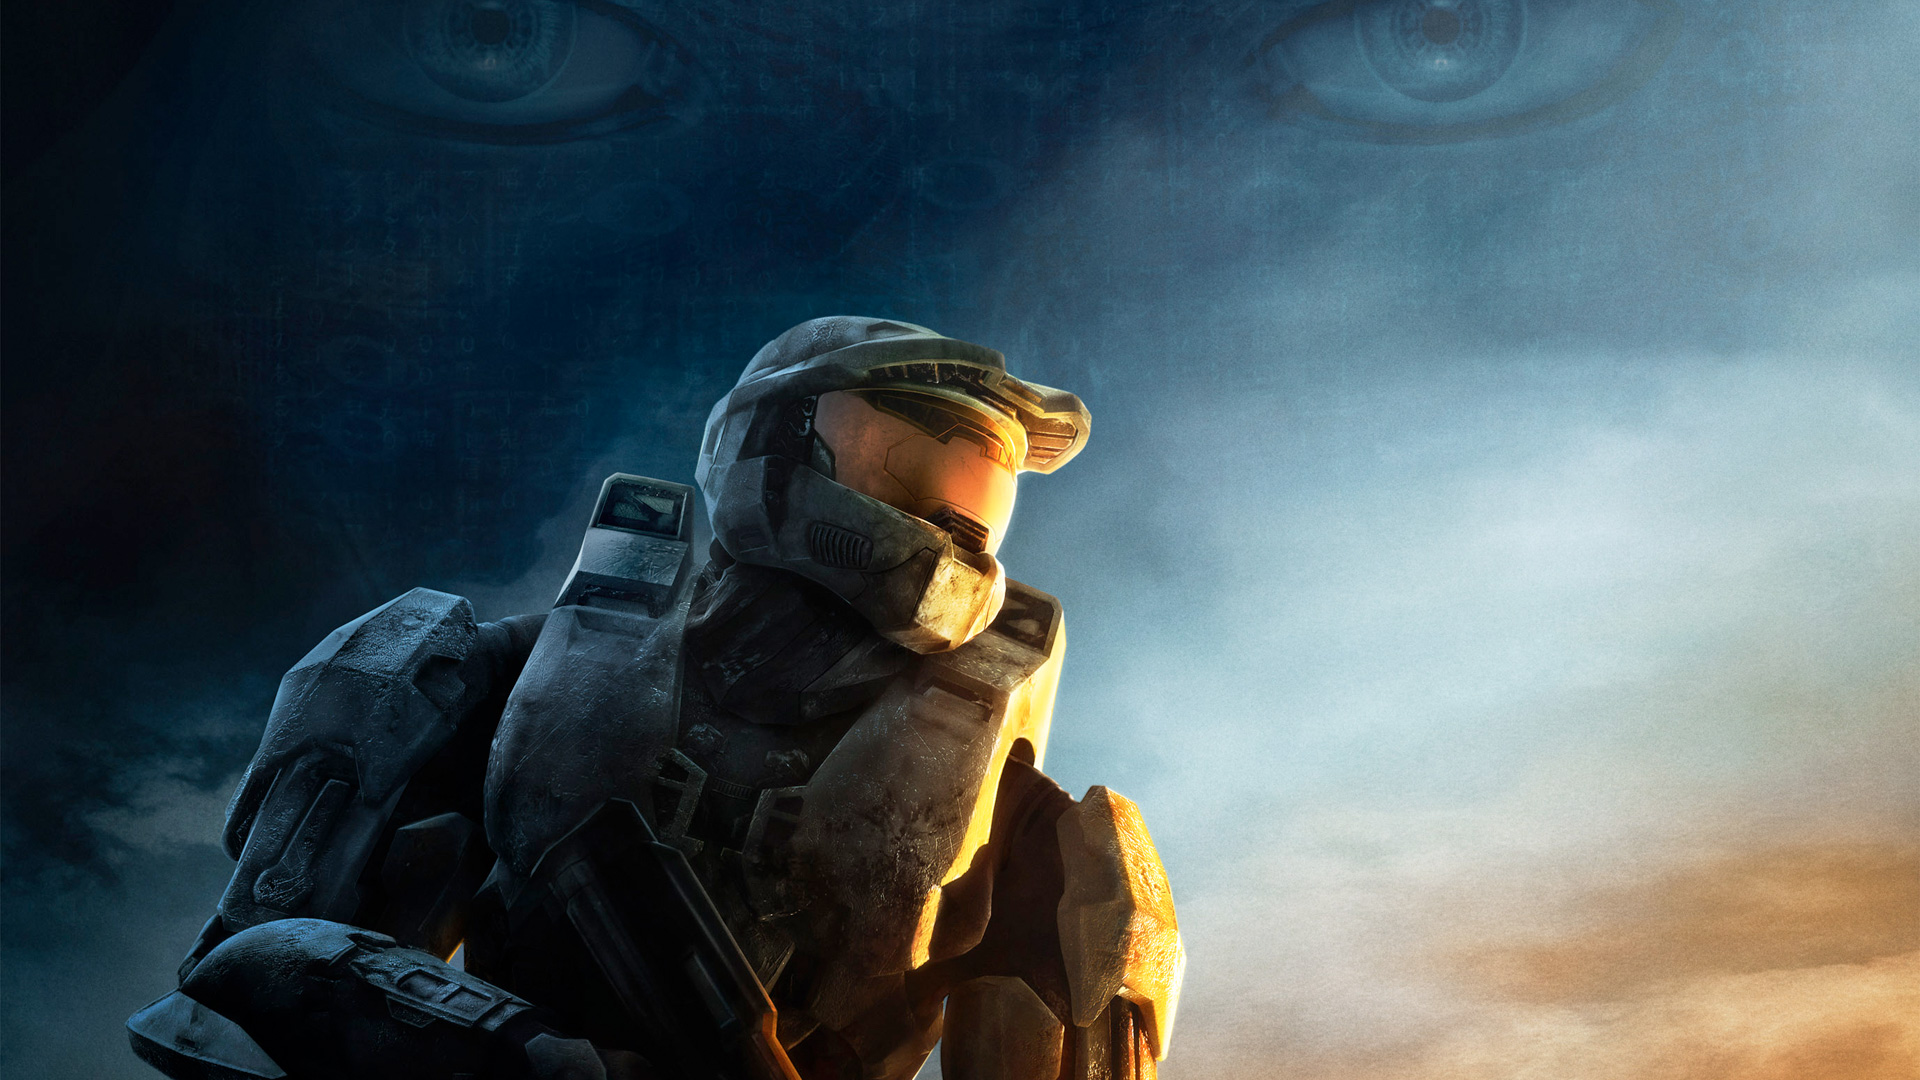 Free Halo 3 Wallpaper in 1920x1080